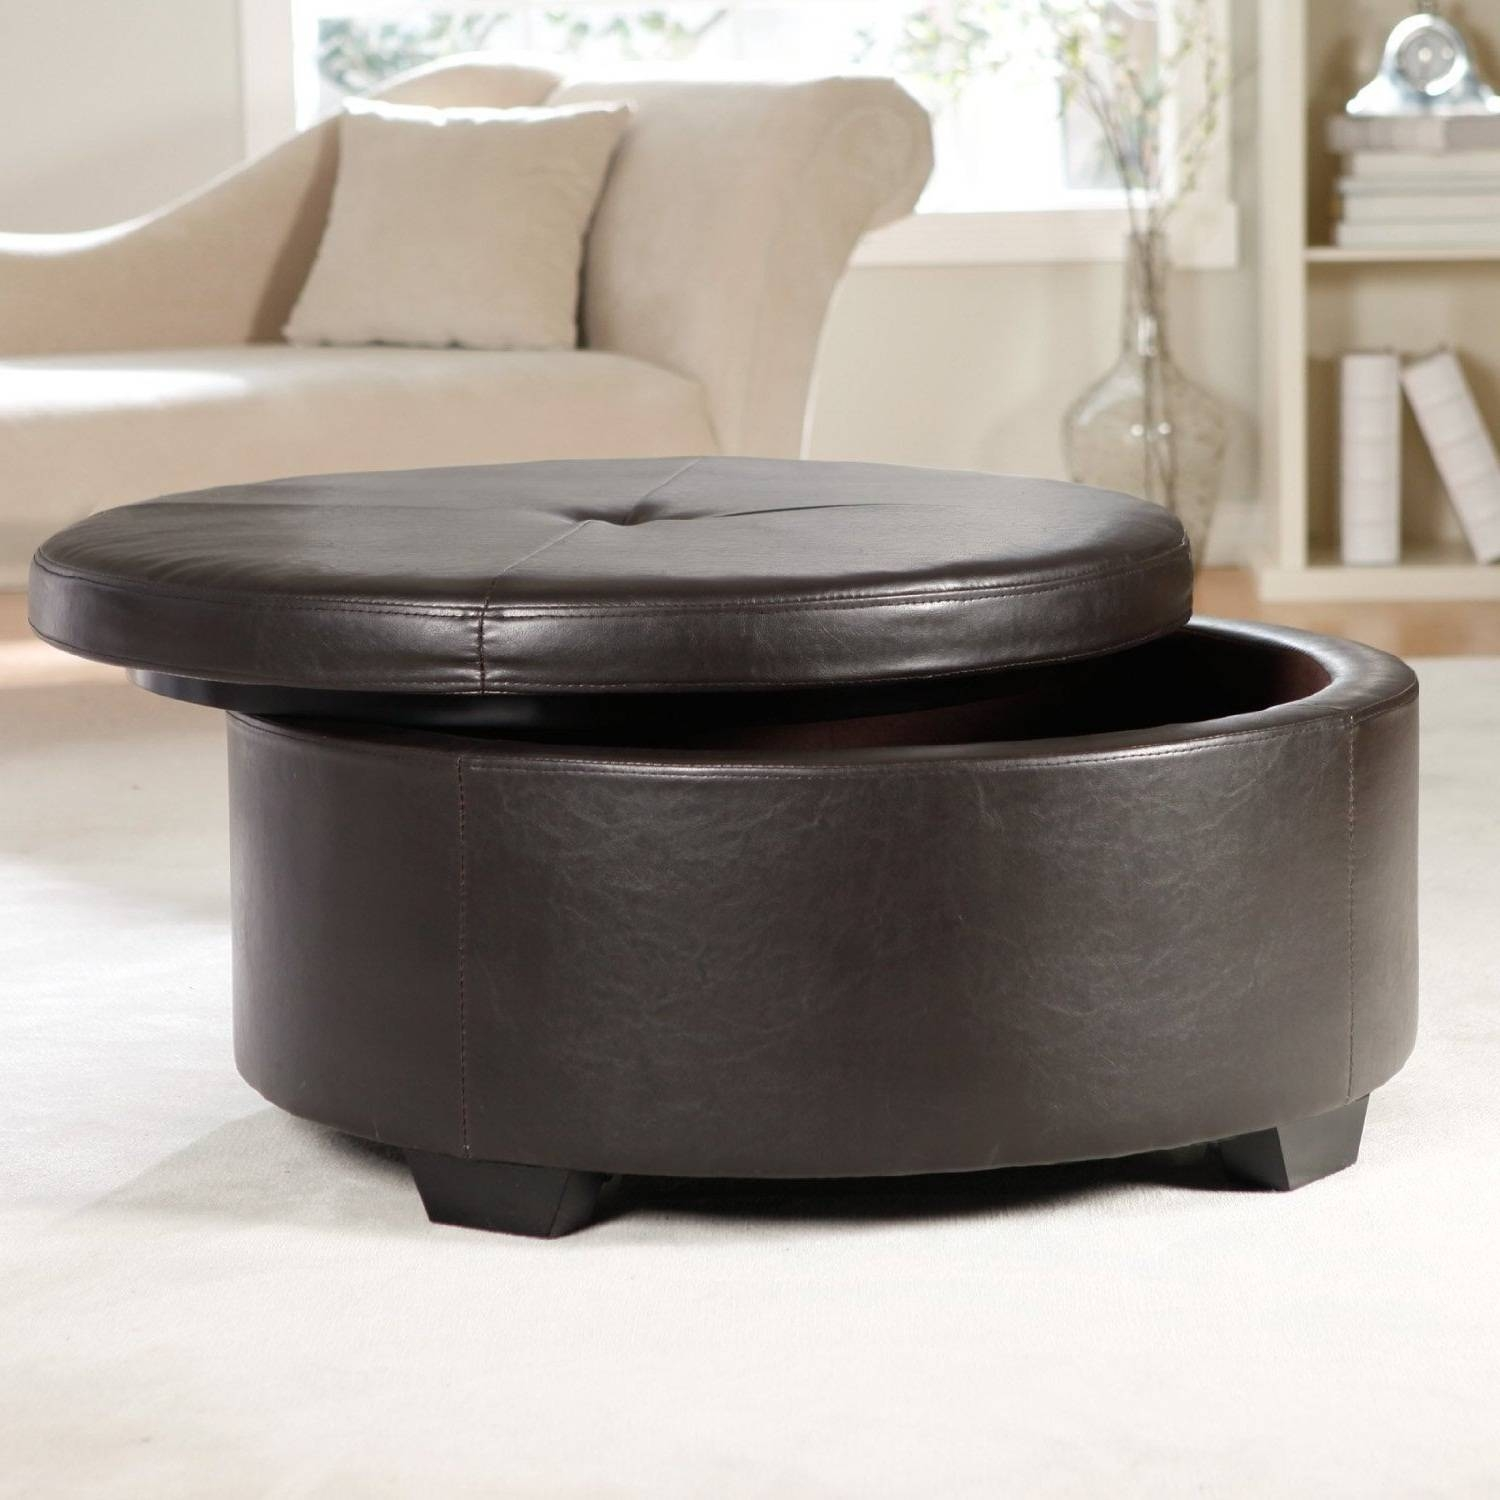 Kinggeorgehomes Discover And Download Home Interior Design Ideas inside Oversized Round Coffee Tables (Image 18 of 30)